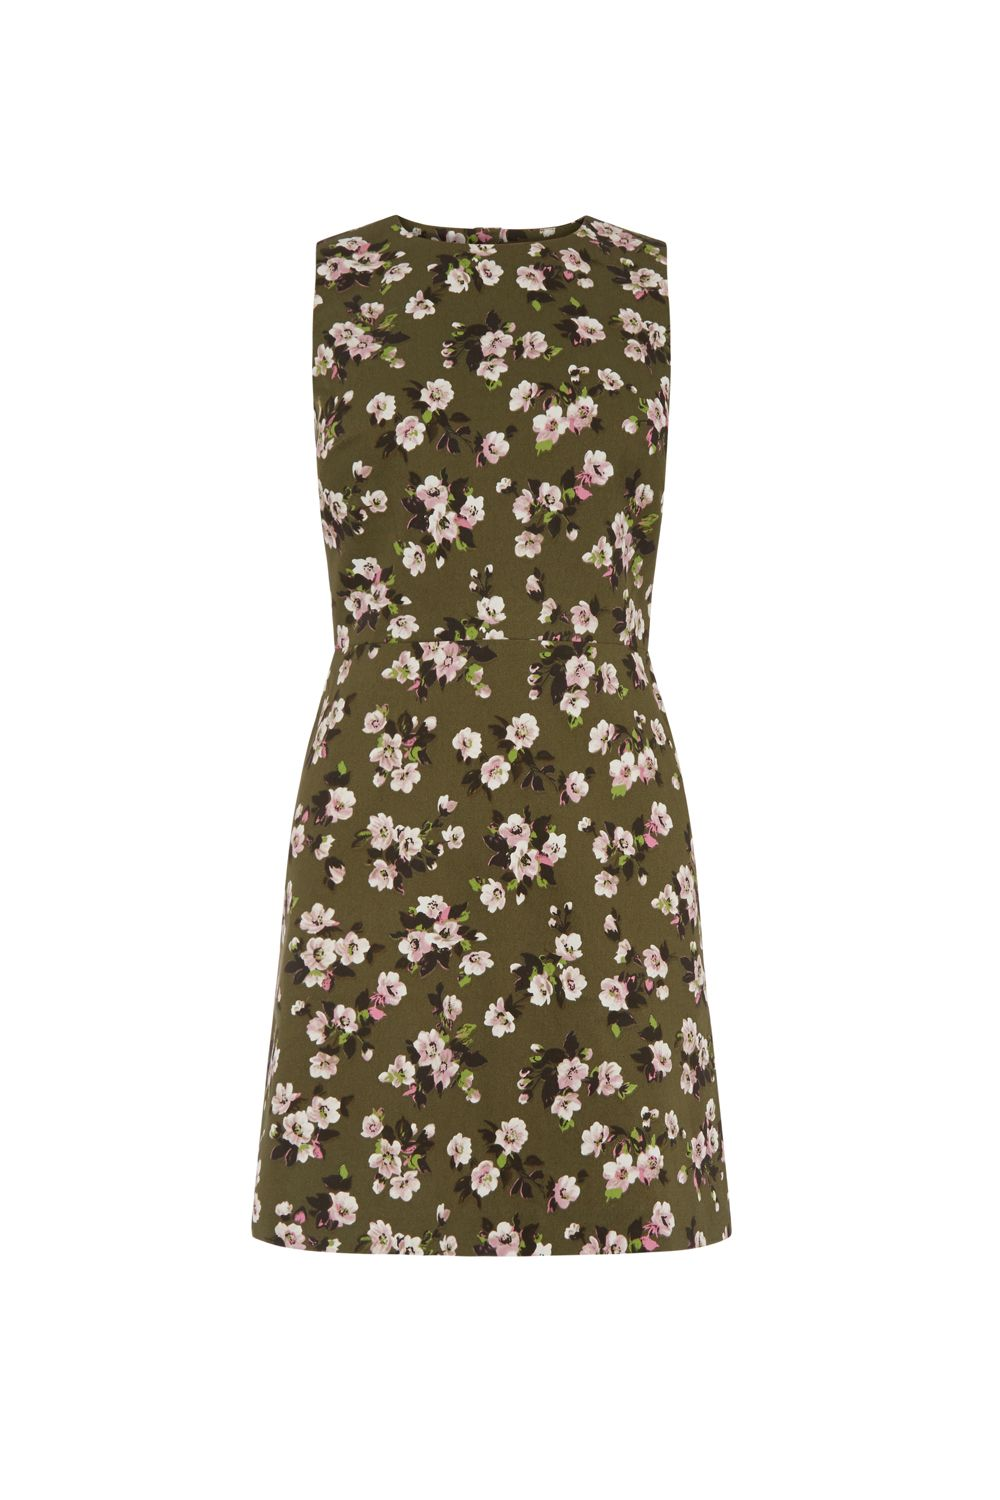 Warehouse Mae Floral Shift Dress, Multi-Coloured